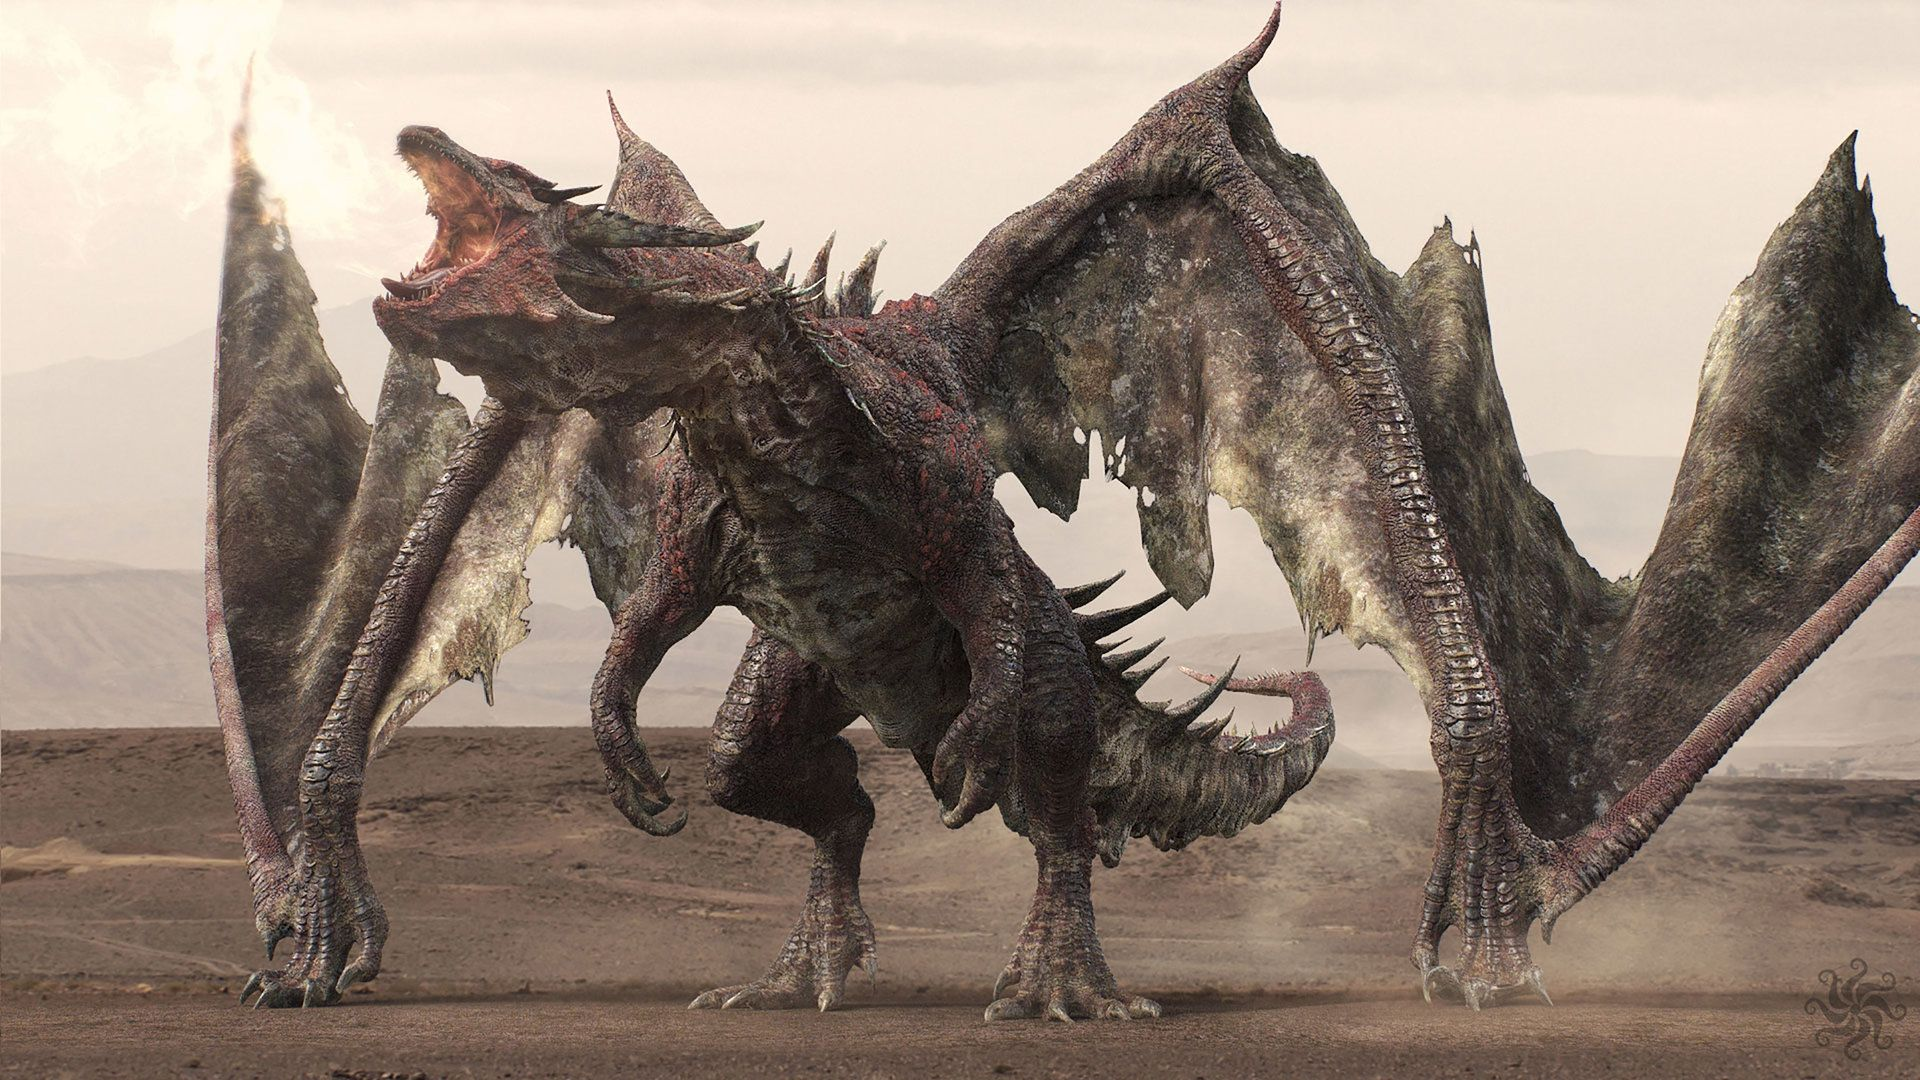 3d rendered dragon from Game of Thrones